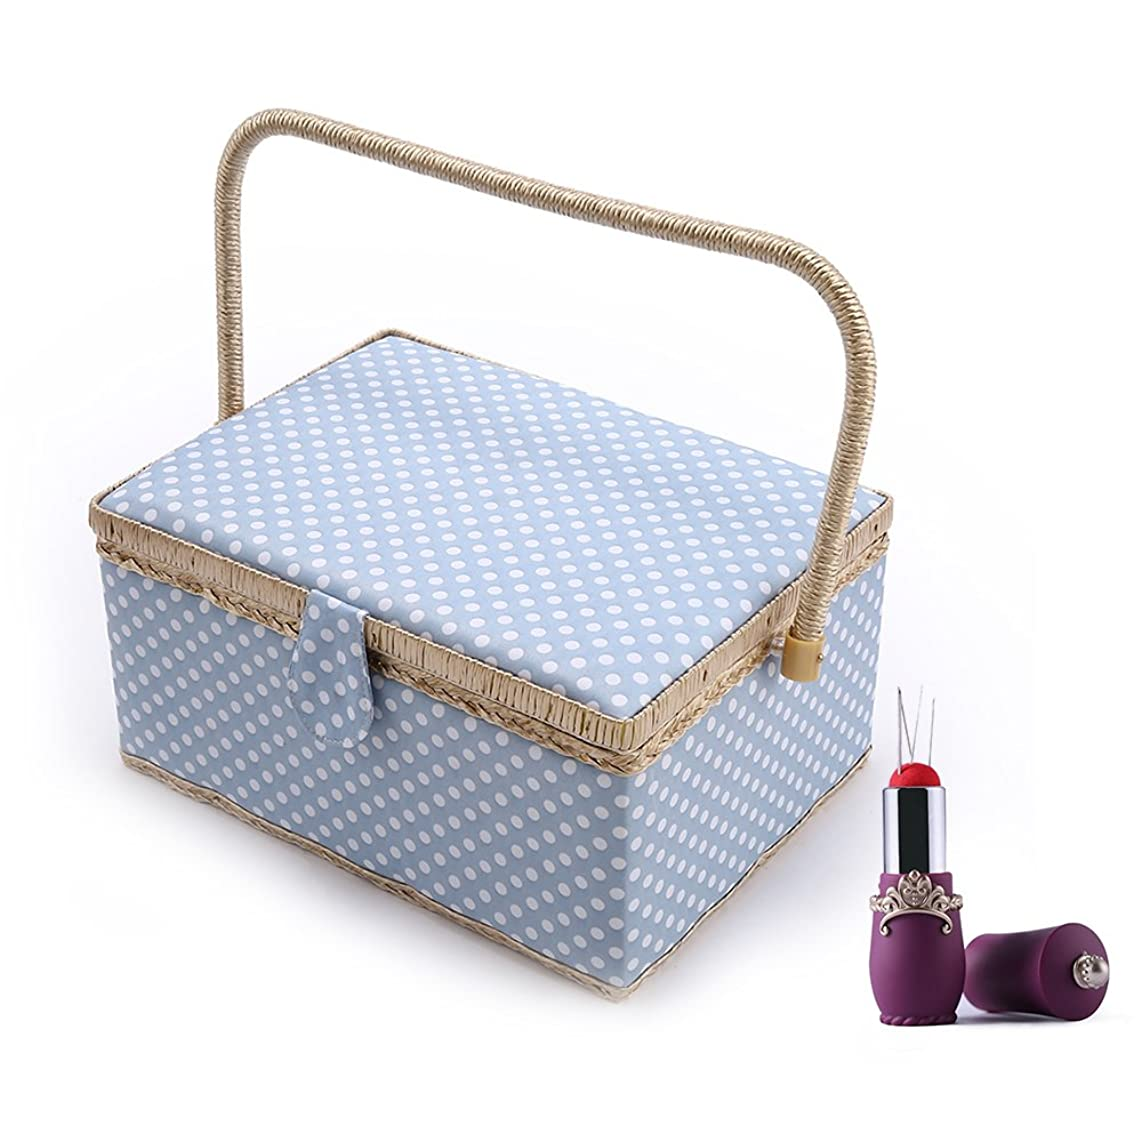 SAXTX Polka Dot Large Sewing Basket Organizer with 100pcs Accessories| Home Essentials Sewing Kit Box for Quilting Embroidery | 12 1/5 x 9 x 6 1/3 inches|Blue